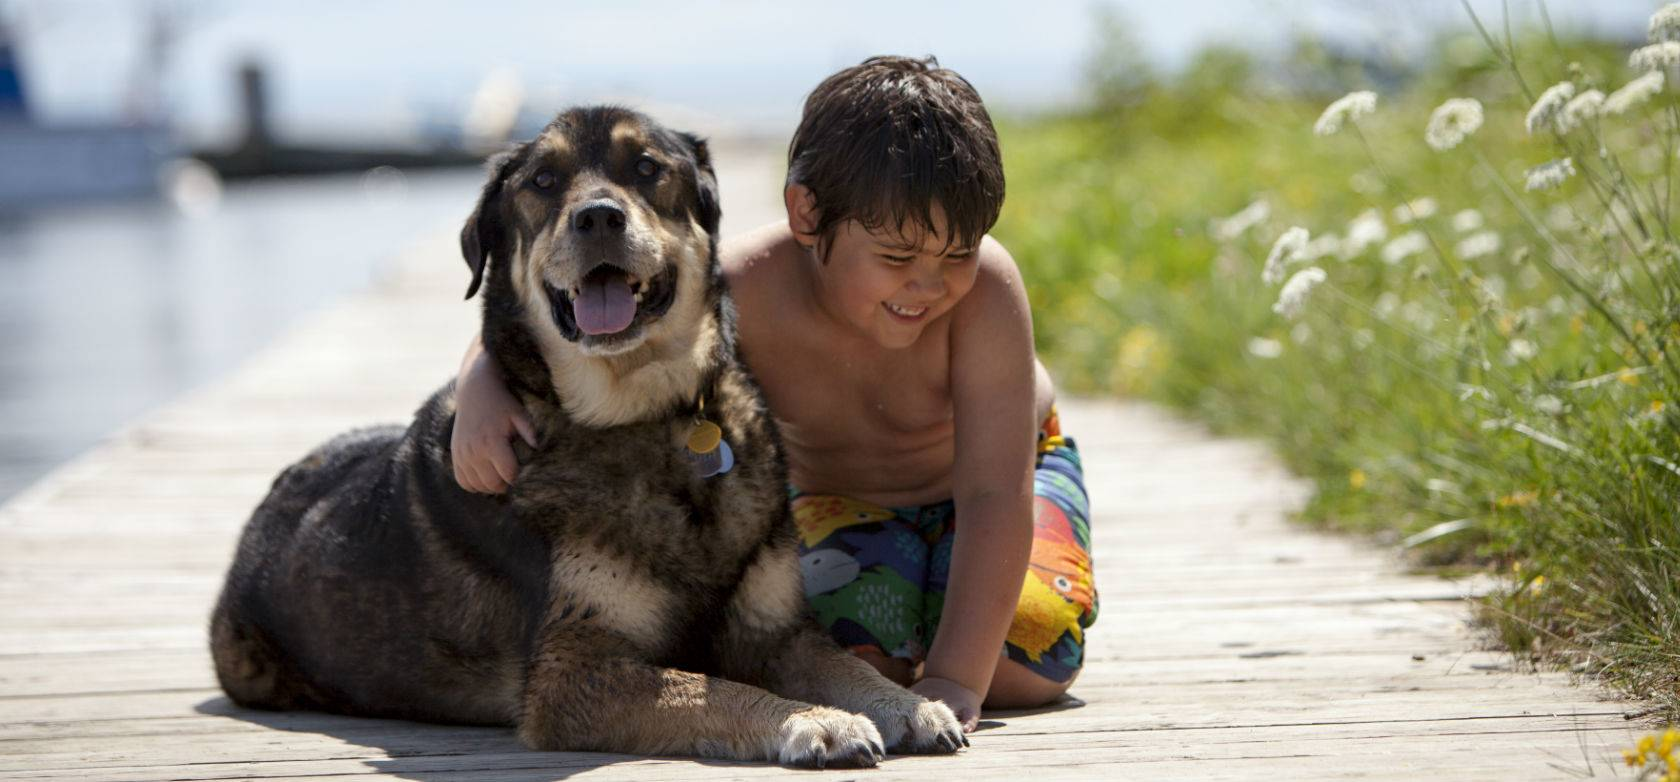 Dog & Boy on Boardwalk